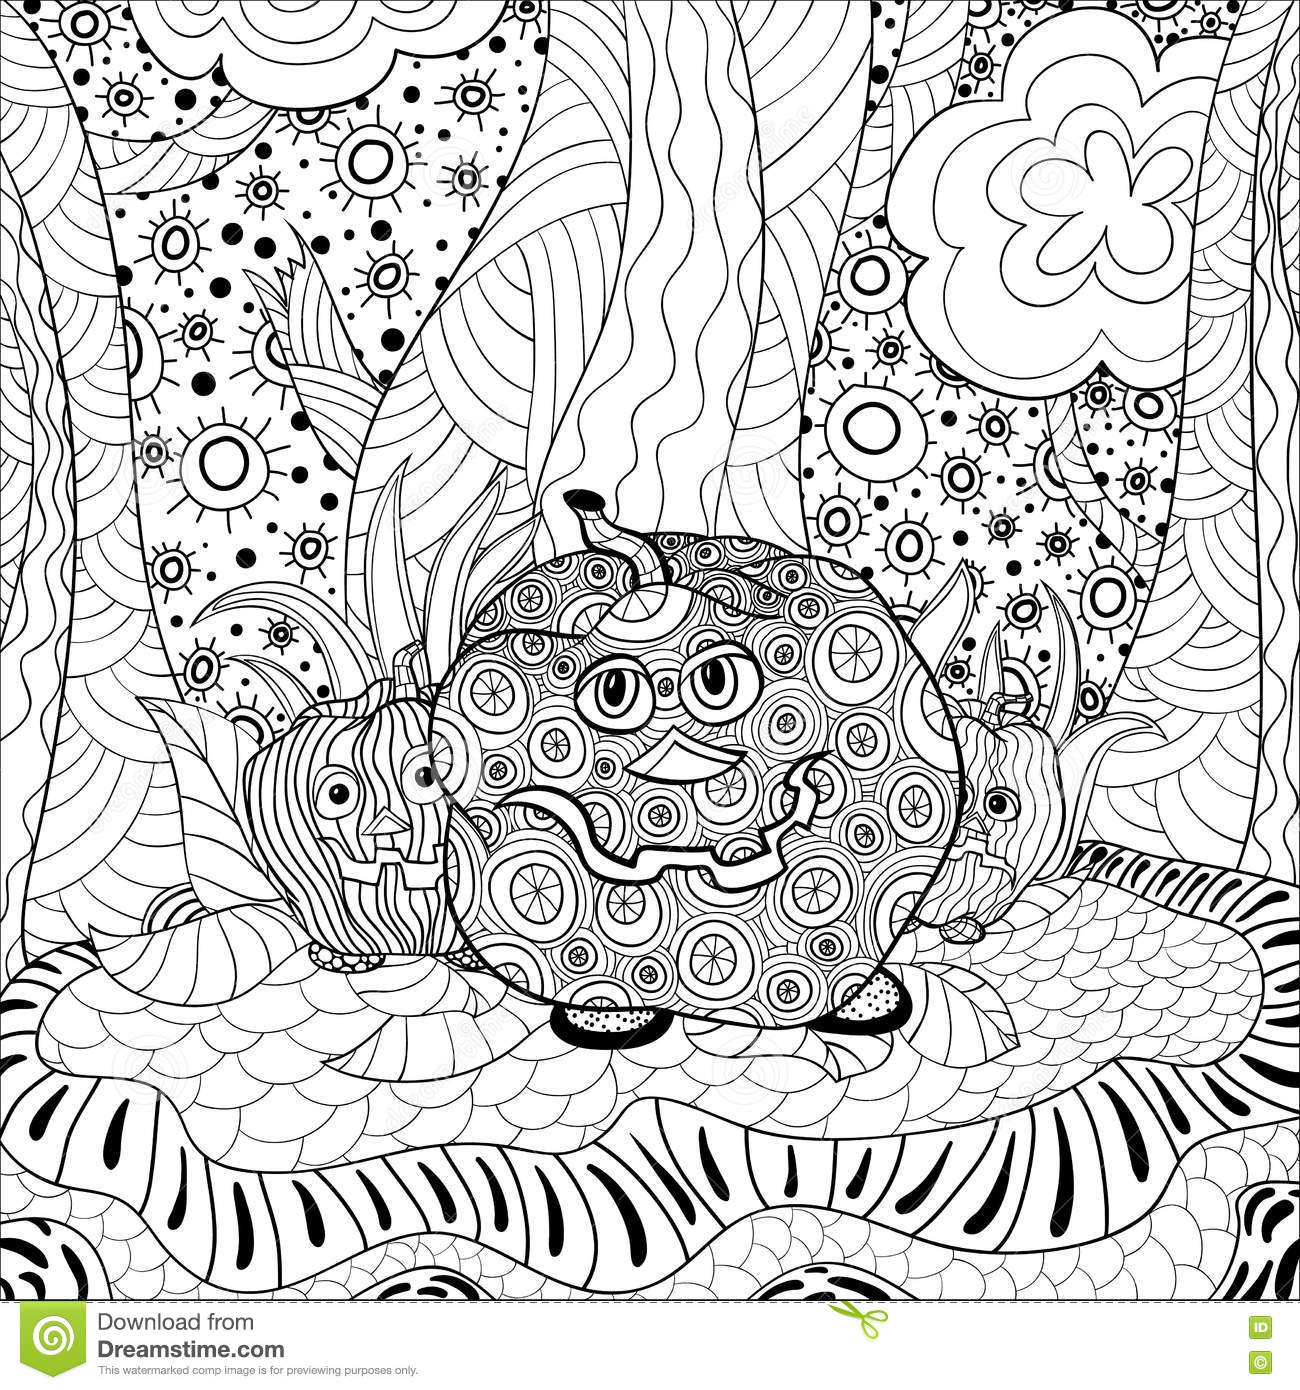 Coloring Book Adult Halloween Stock Vector Image 77554434